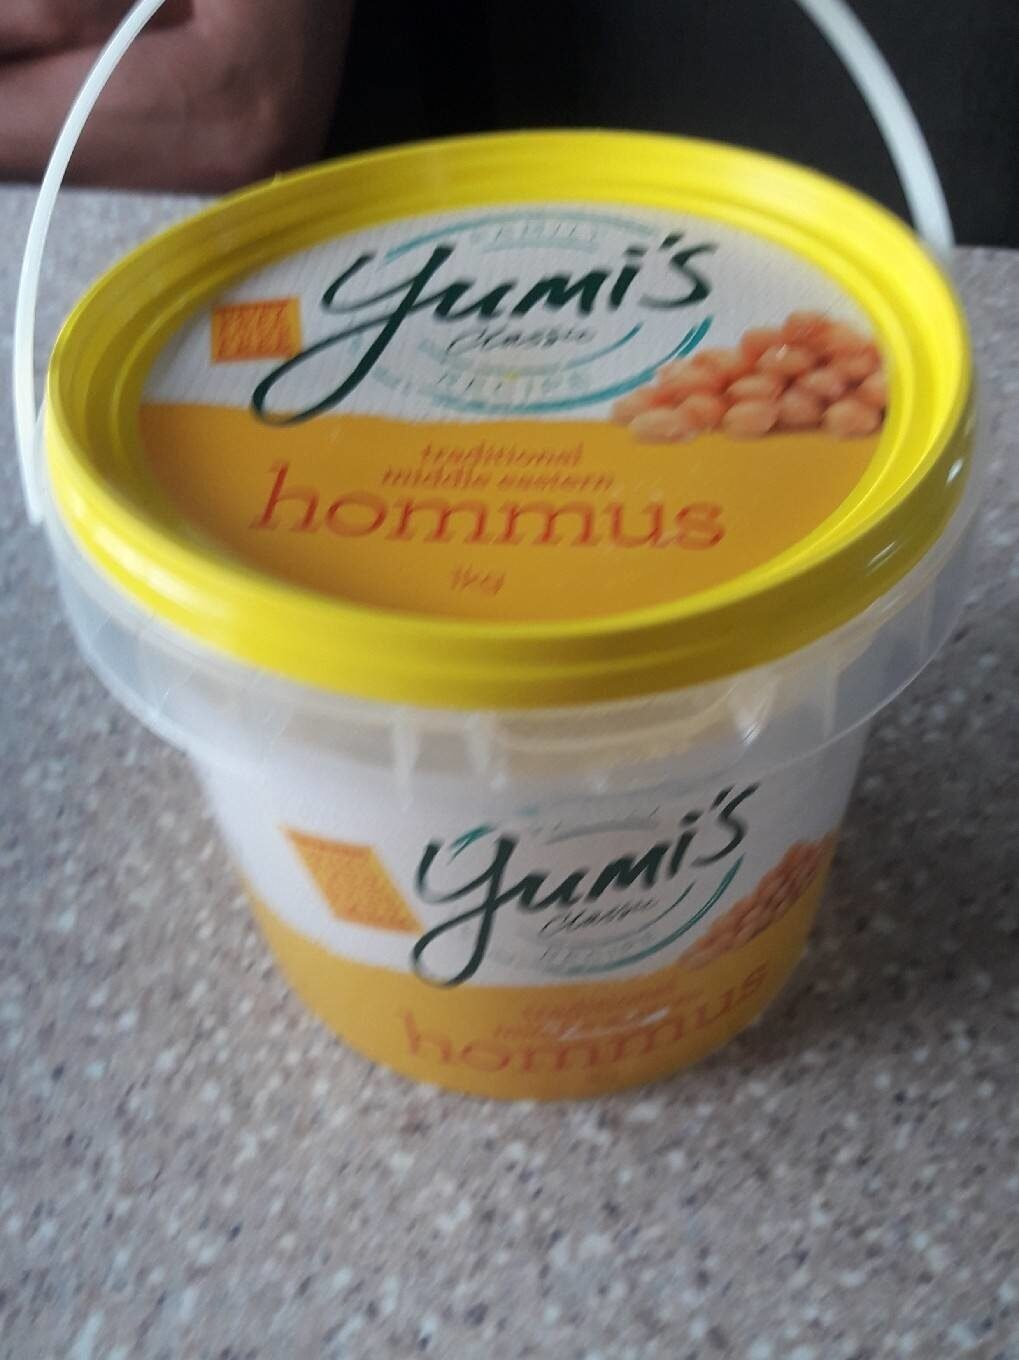 Traditional middle eastern hommus 1kg - Product - en